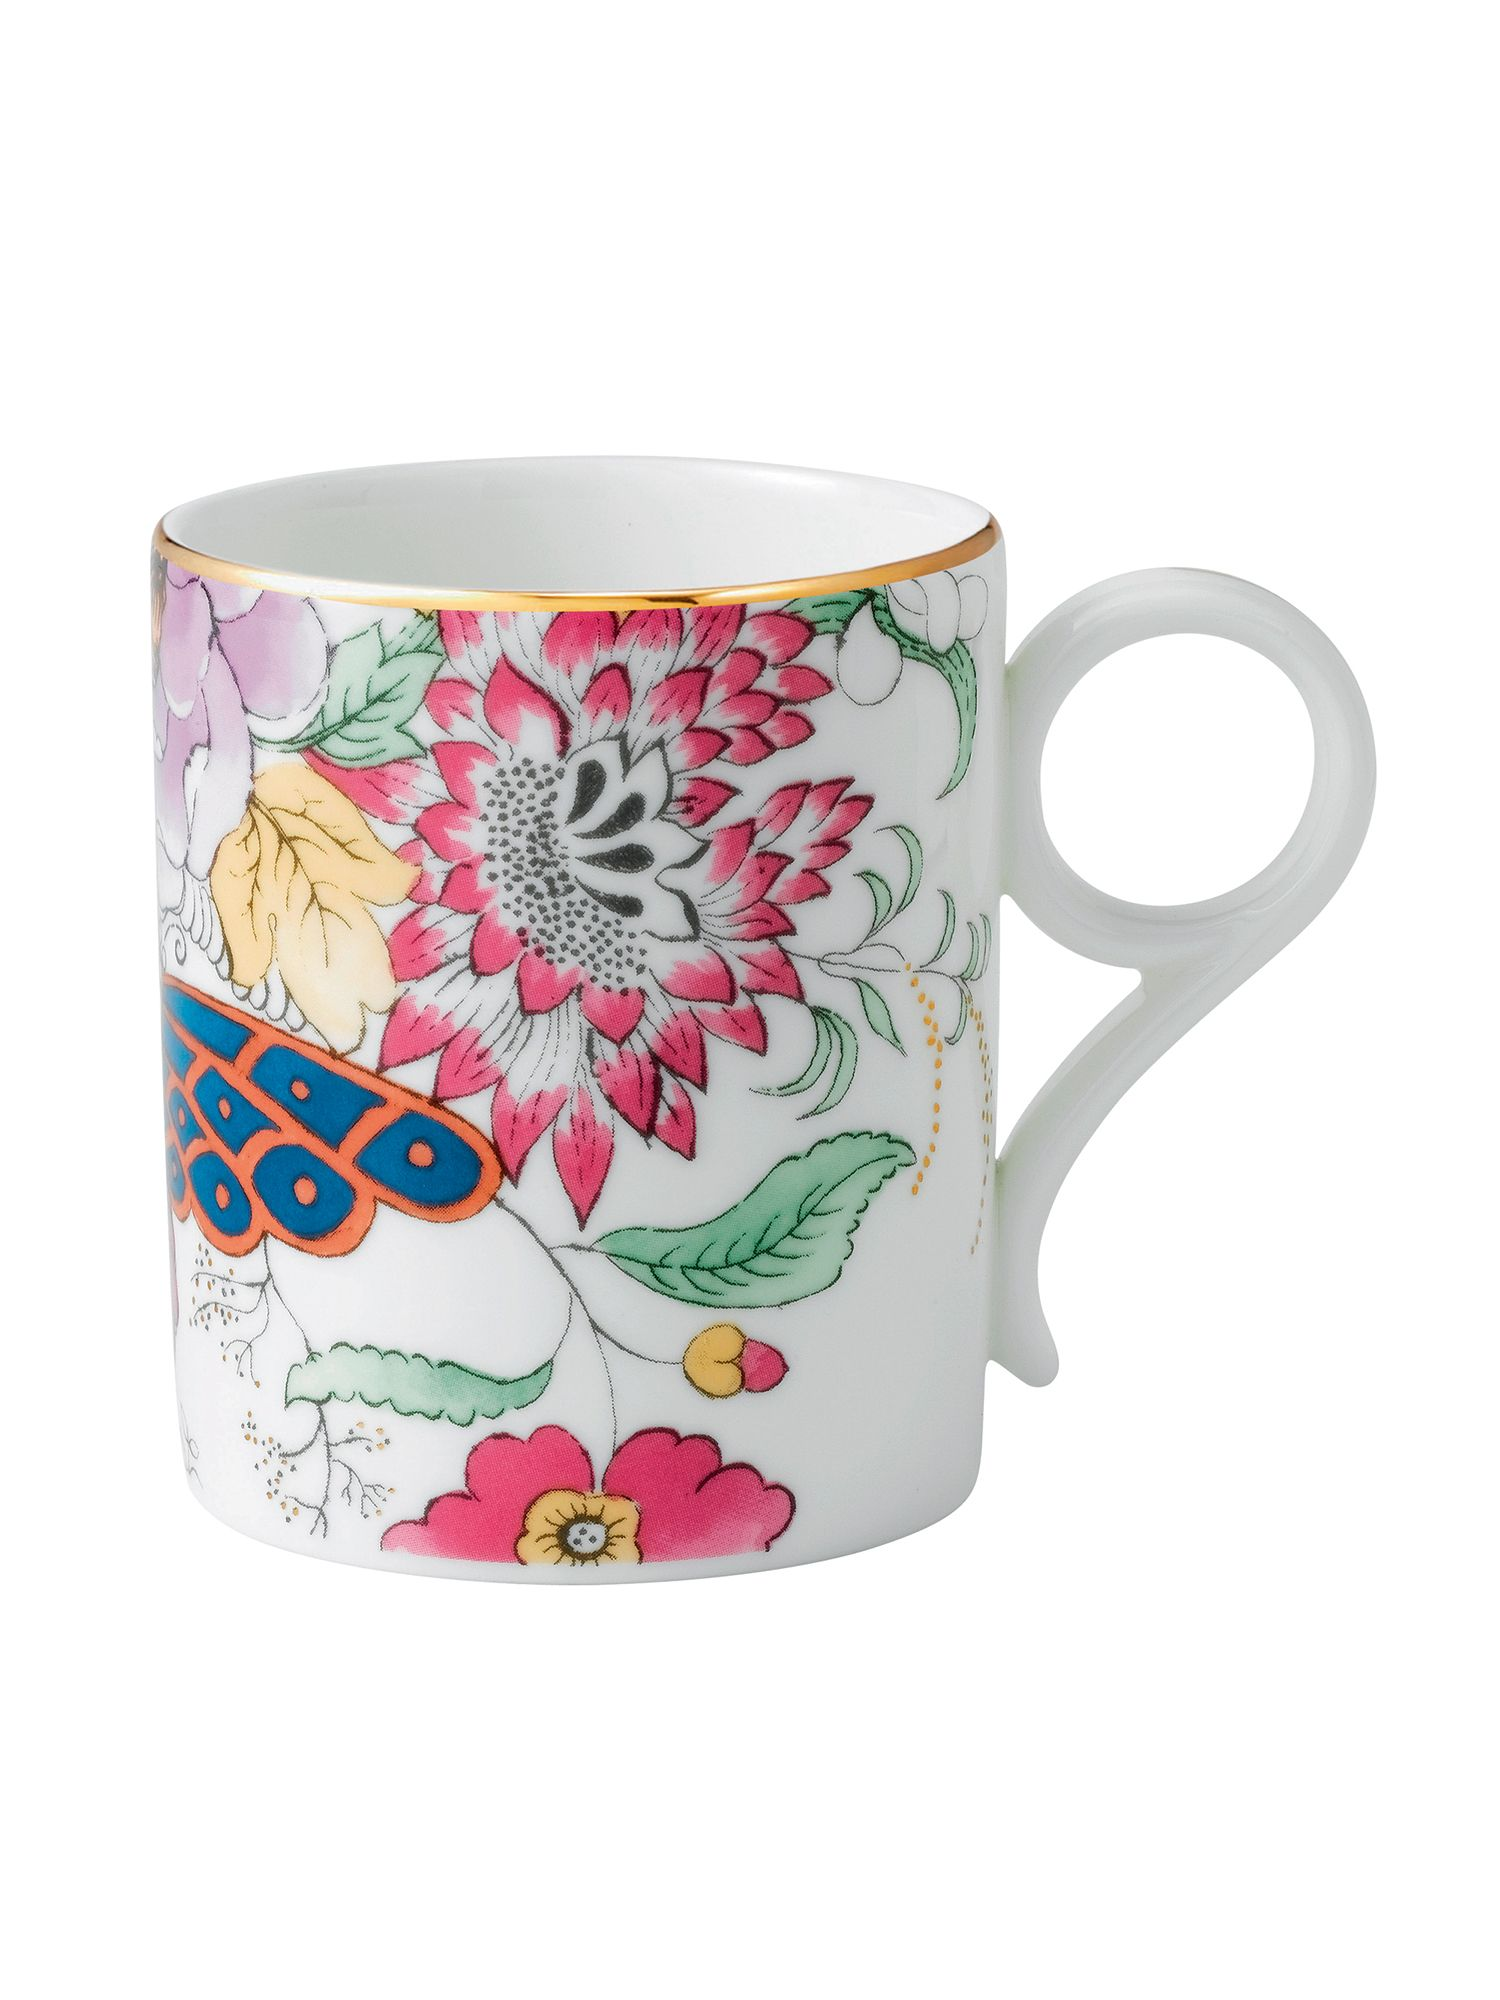 Archive collection floral bouquet mug